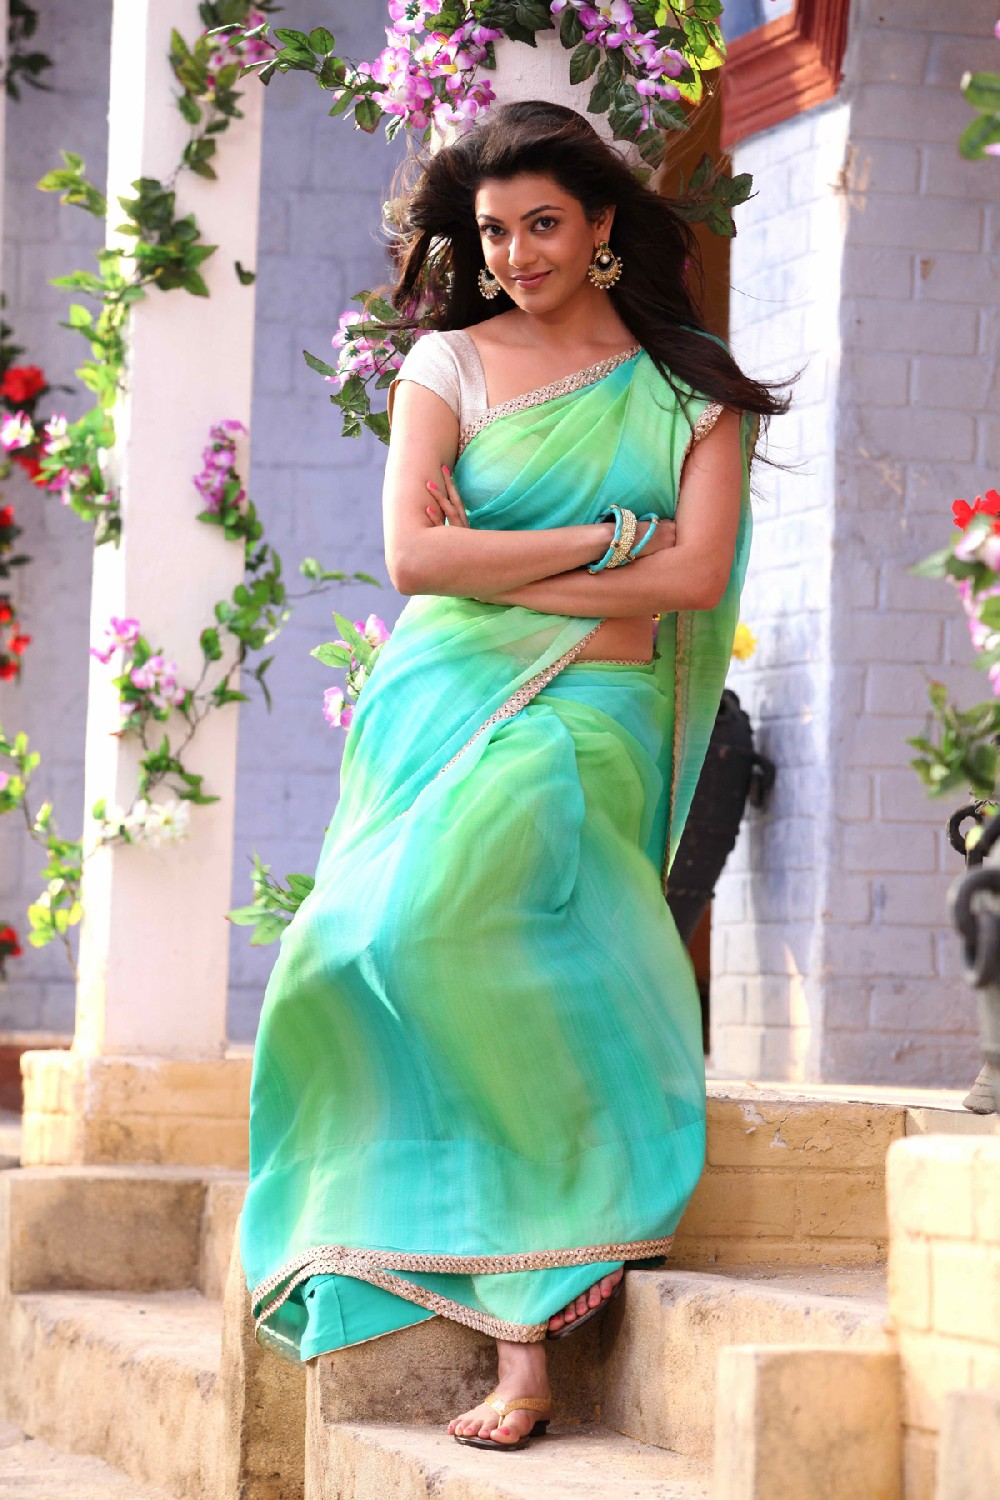 Kajal Agarwal Sizzling photos from Jilla - tollywoodblog.in